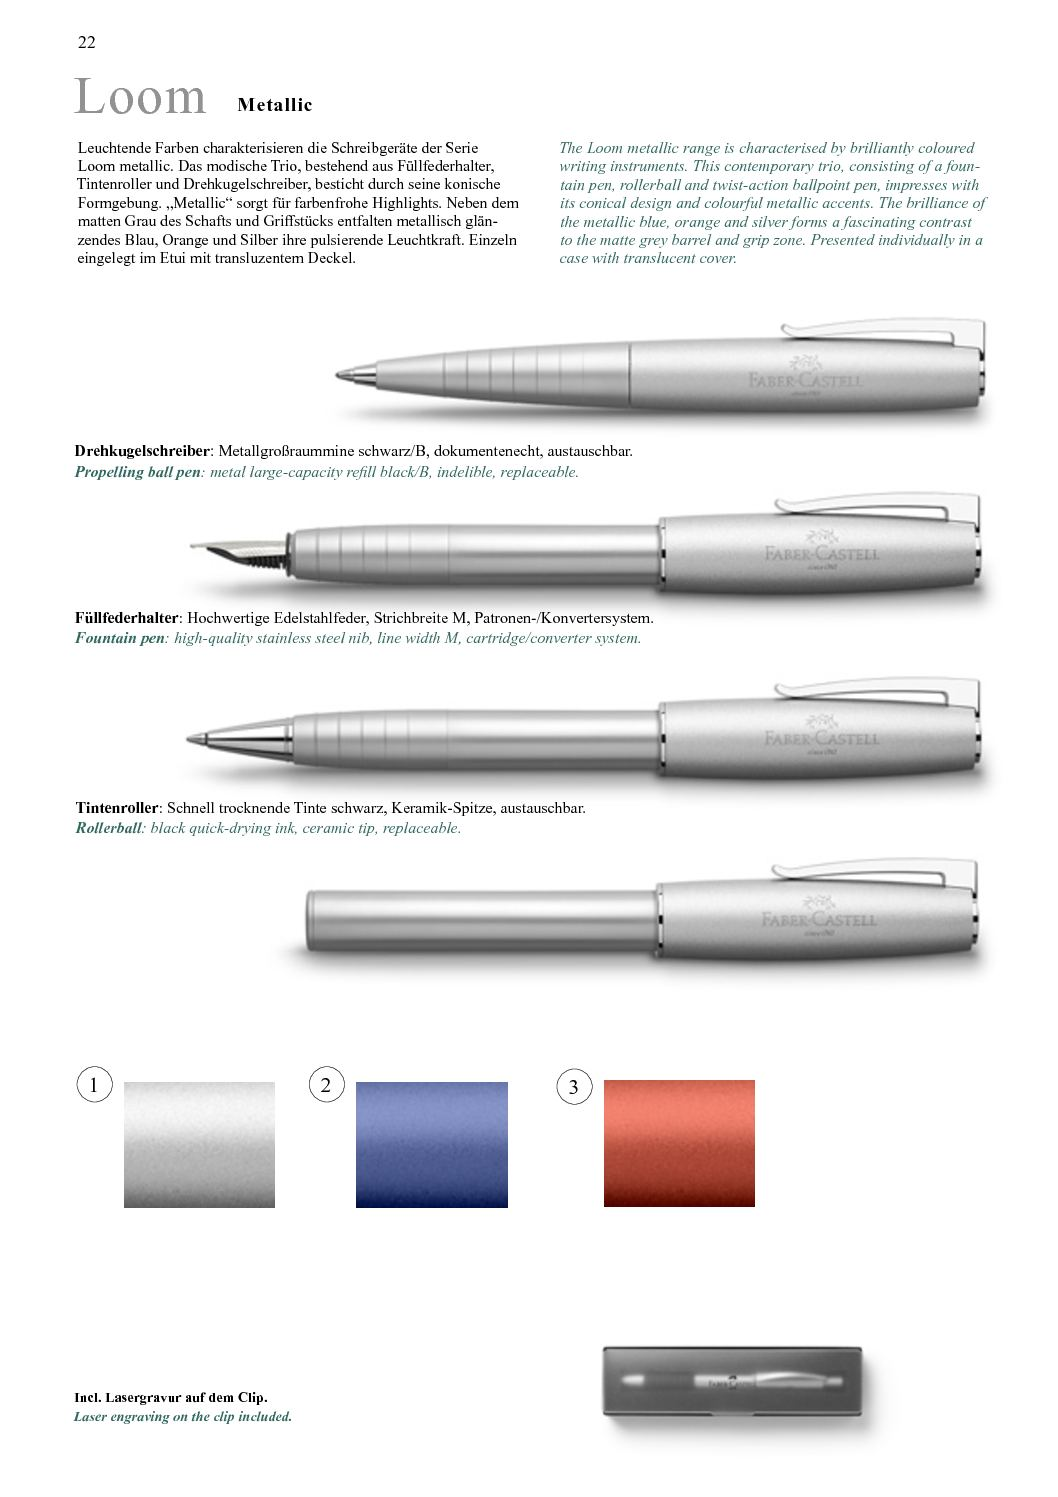 2017 Faber Castell Psac Poteby Calameo Downloader Neo Slim Ballpoint Stylus Stainless Steel Matt Page 22